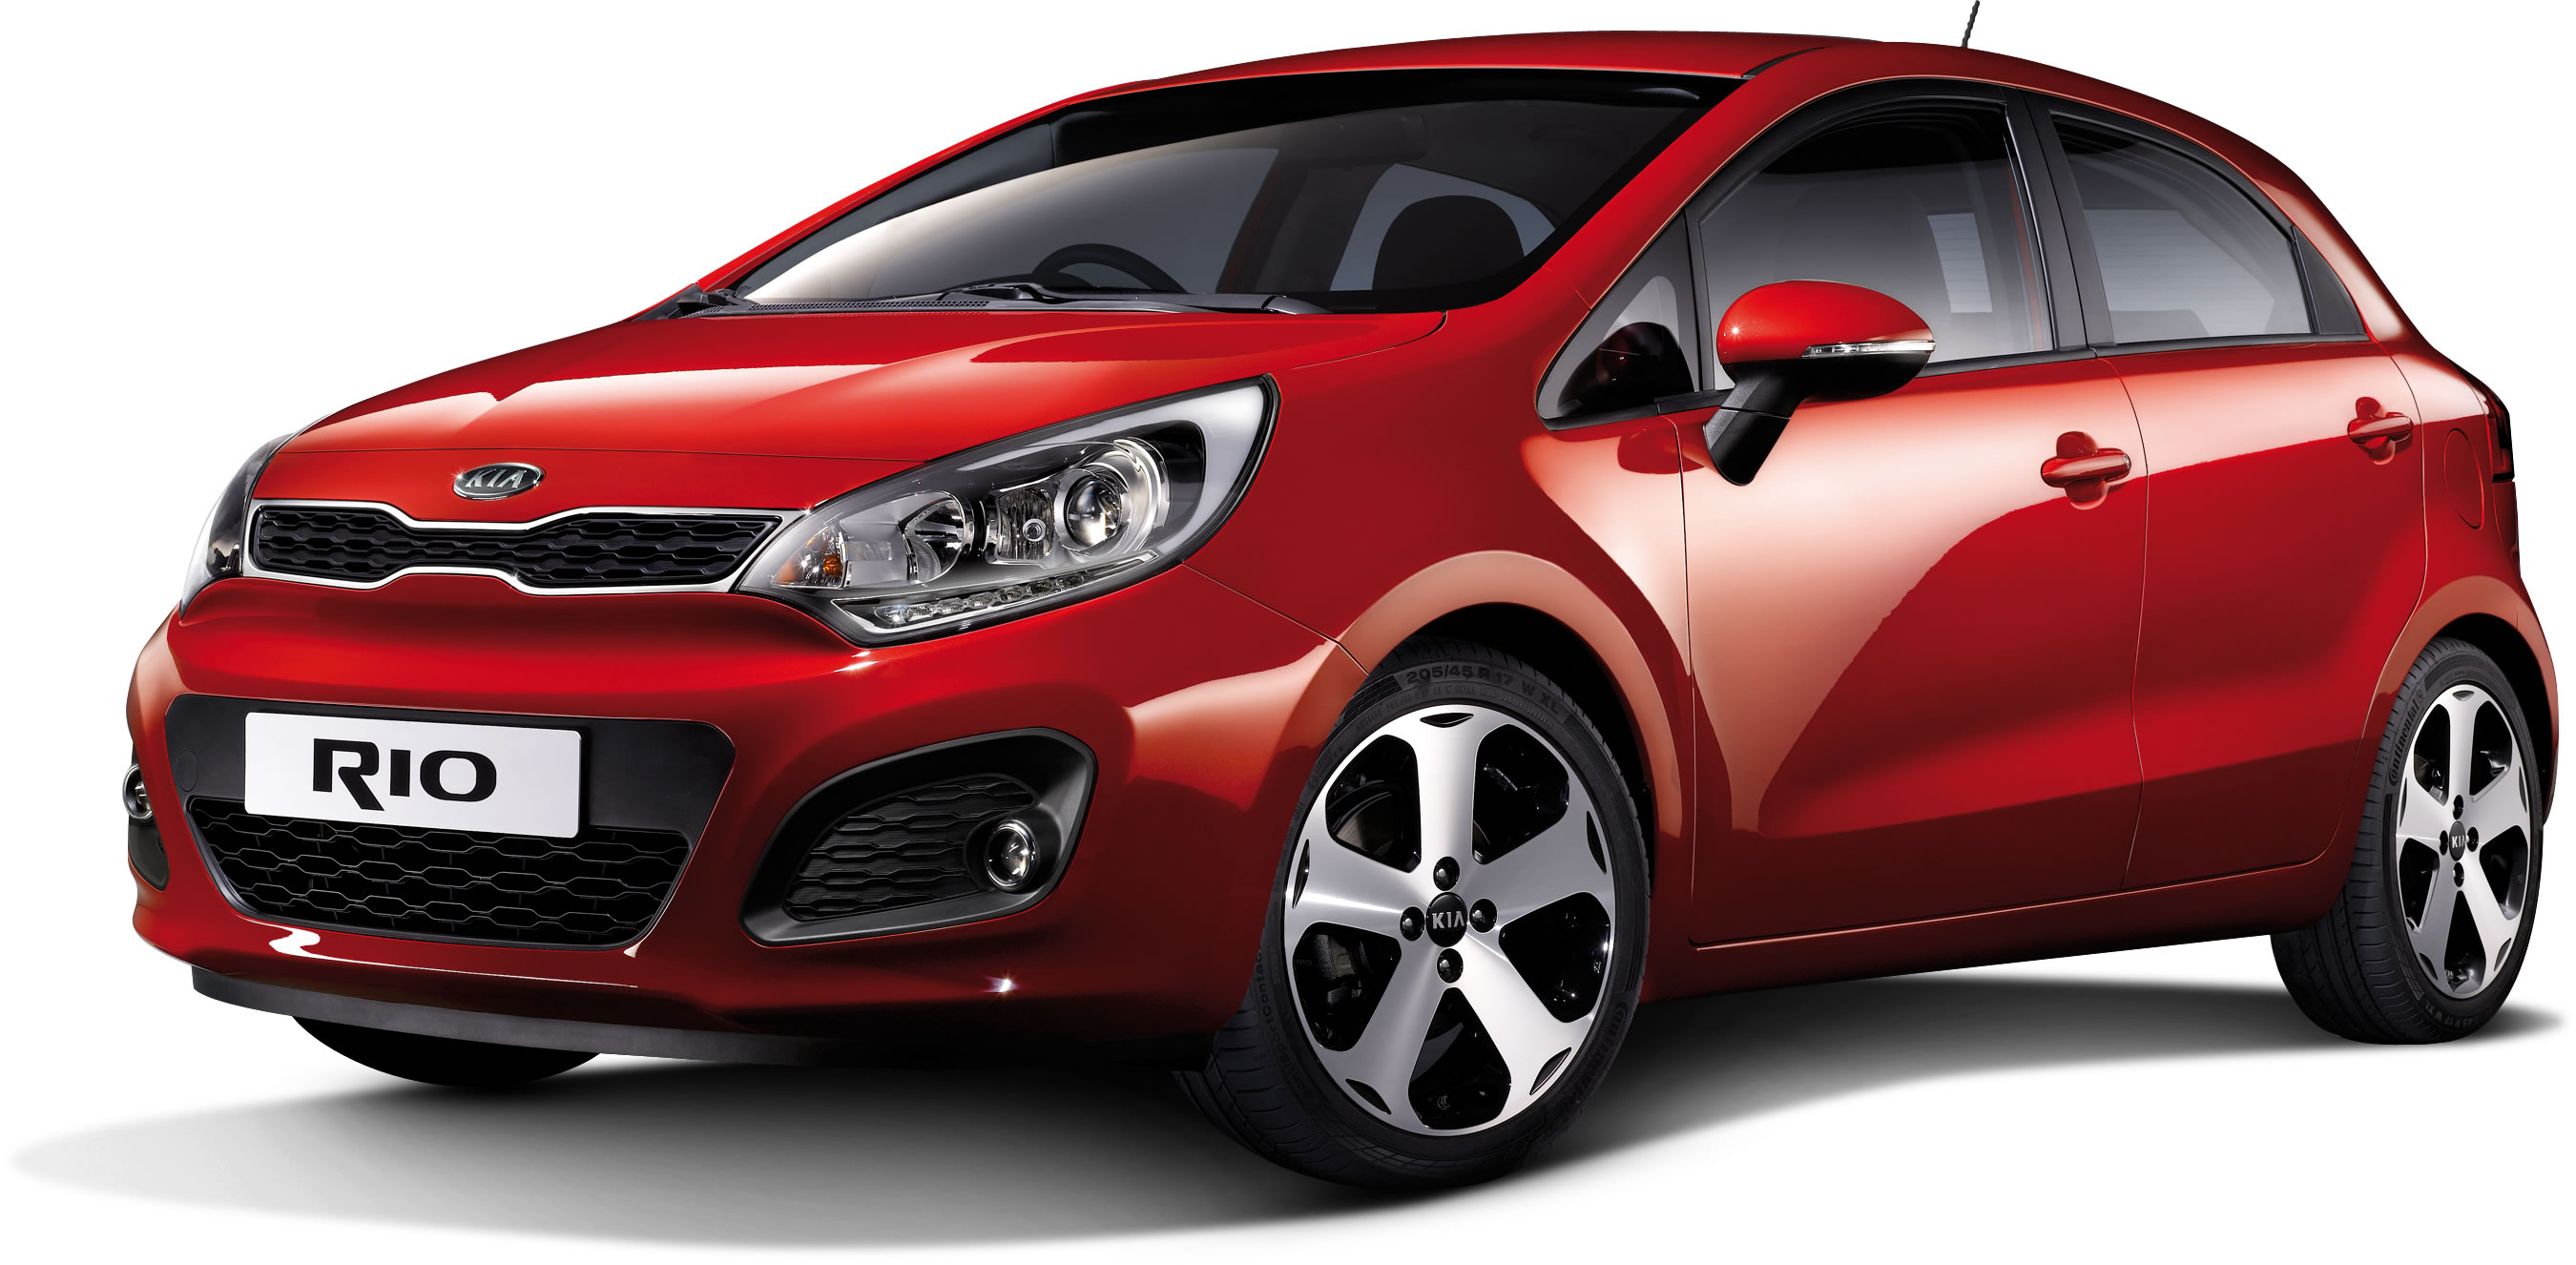 New Kia Rio Cheap Offers Coming Soon to dealers High Resolution Wallpaper Free